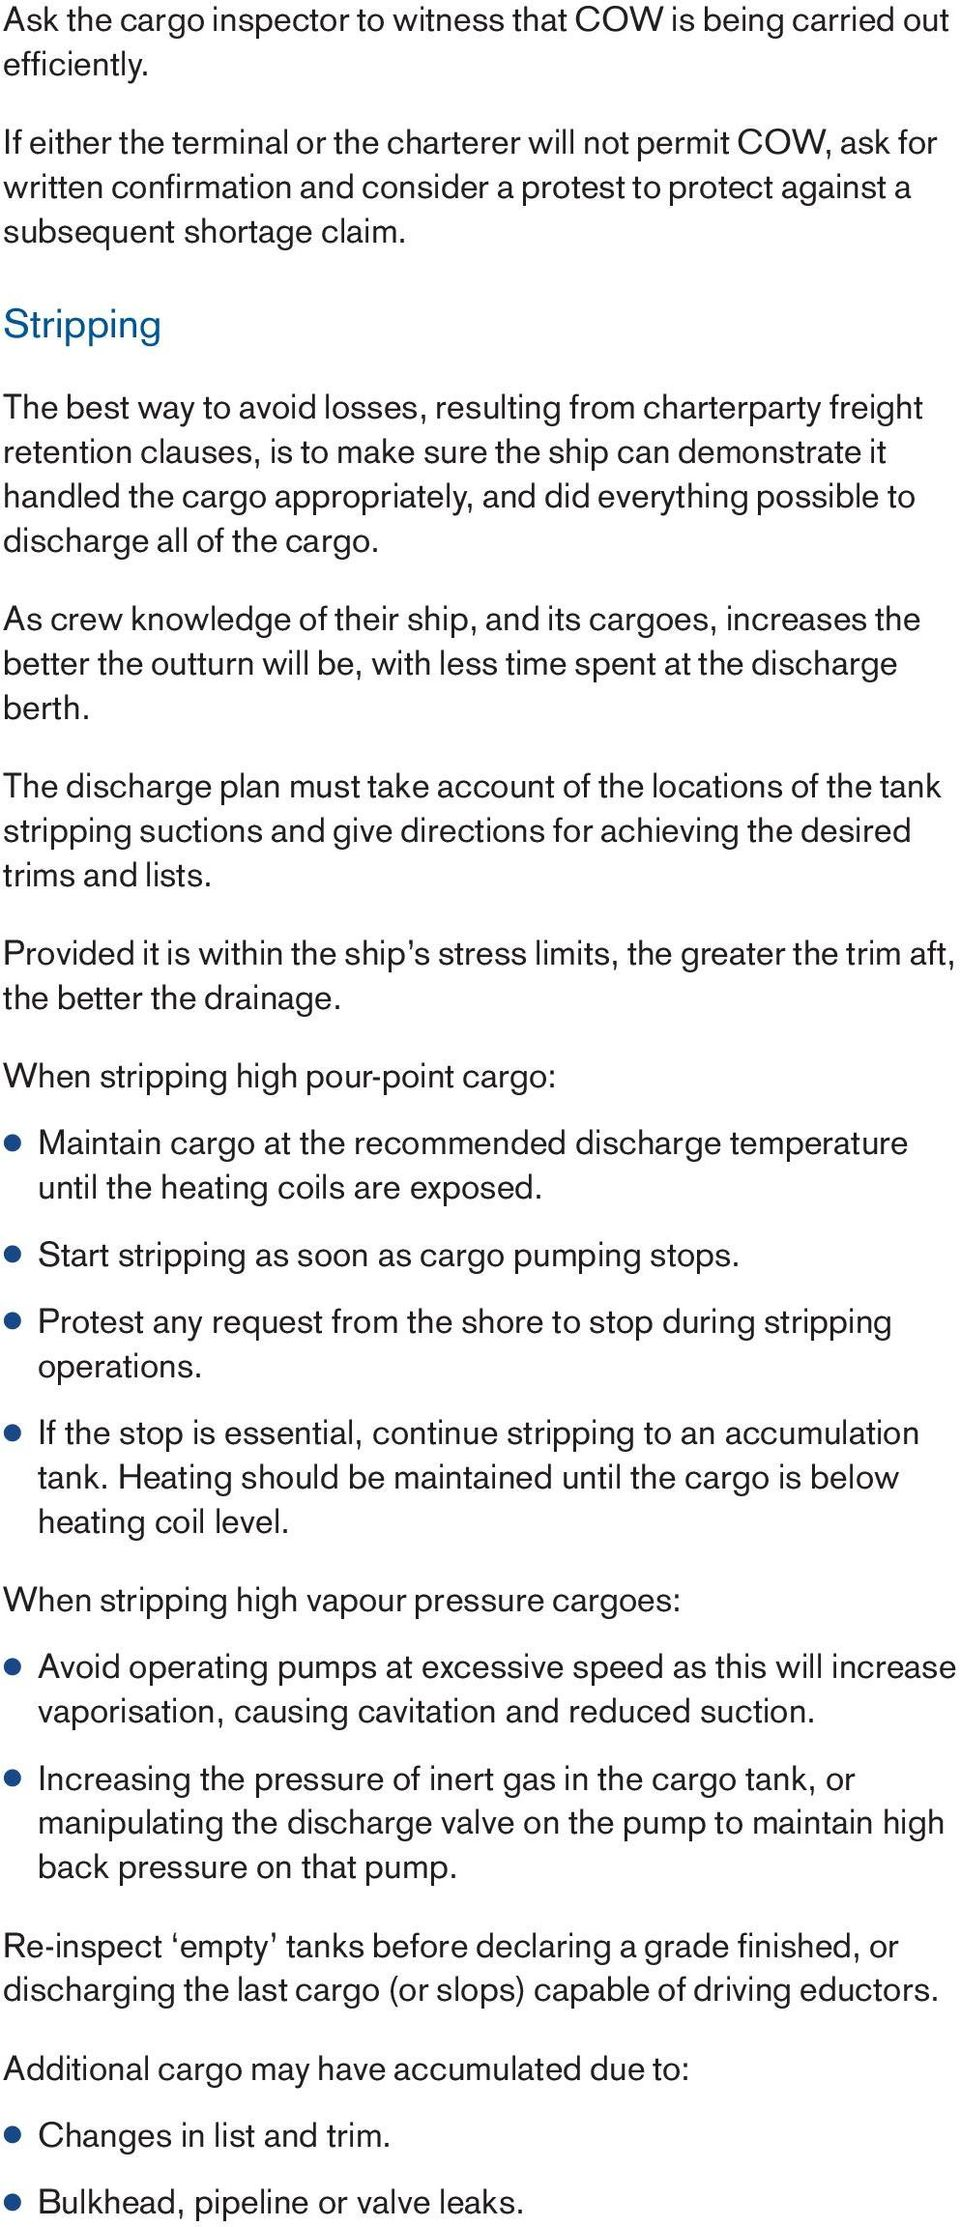 Stripping The best way to avoid losses, resulting from charterparty freight retention clauses, is to make sure the ship can demonstrate it handled the cargo appropriately, and did everything possible